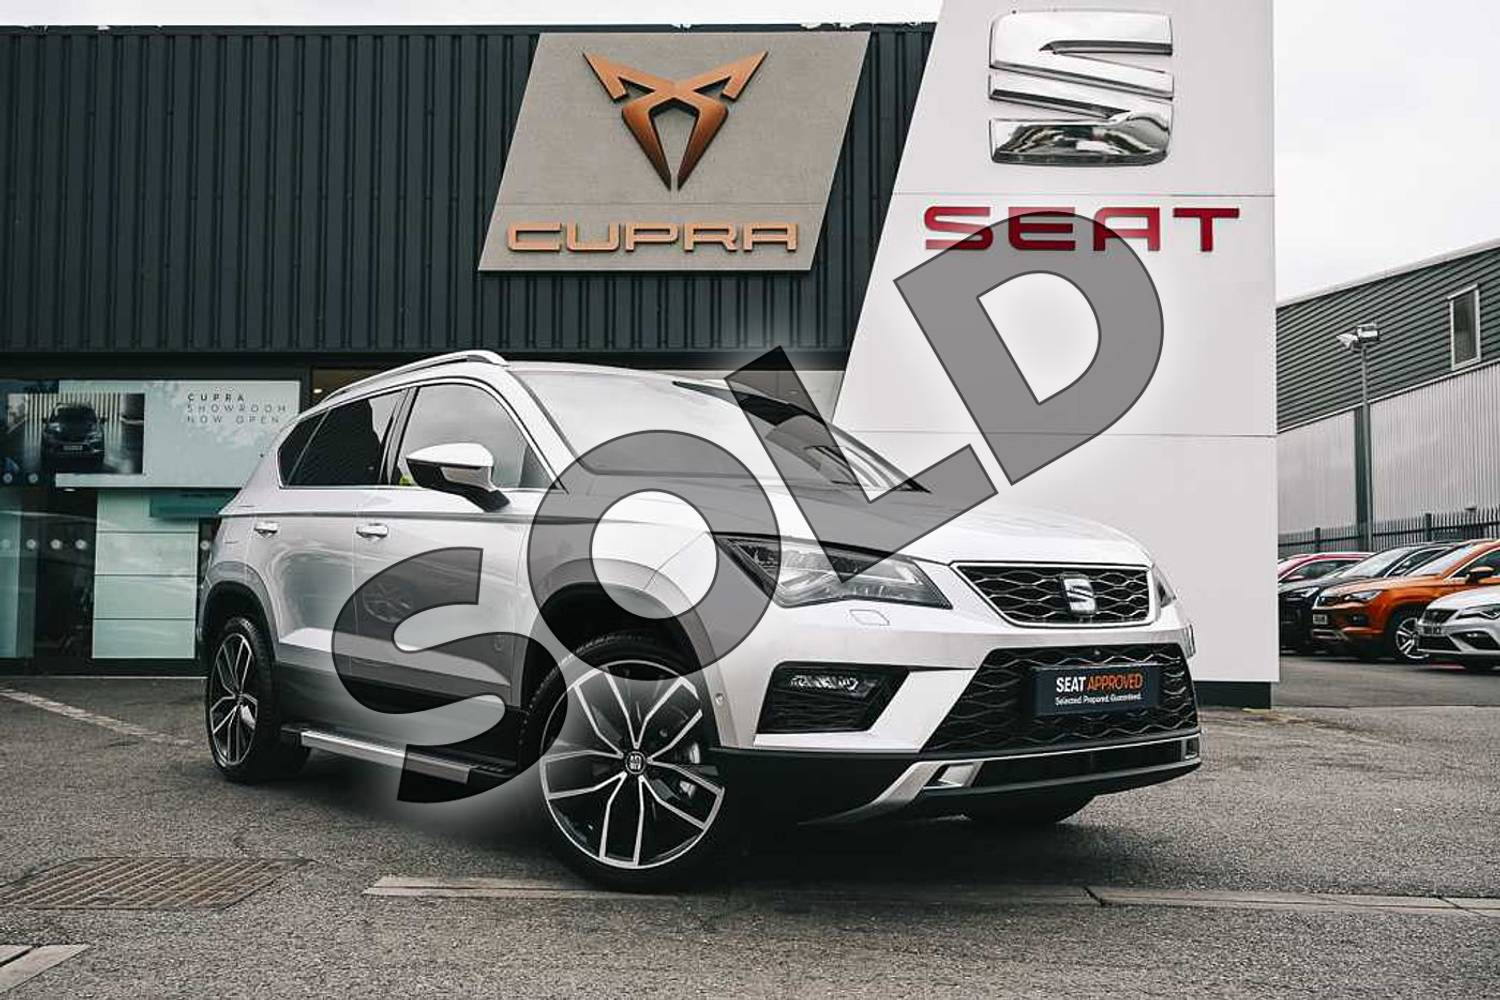 2019 SEAT Ateca Estate 1.5 TSI EVO Xcellence Lux (EZ) 5dr in Reflex silver at Listers SEAT Coventry